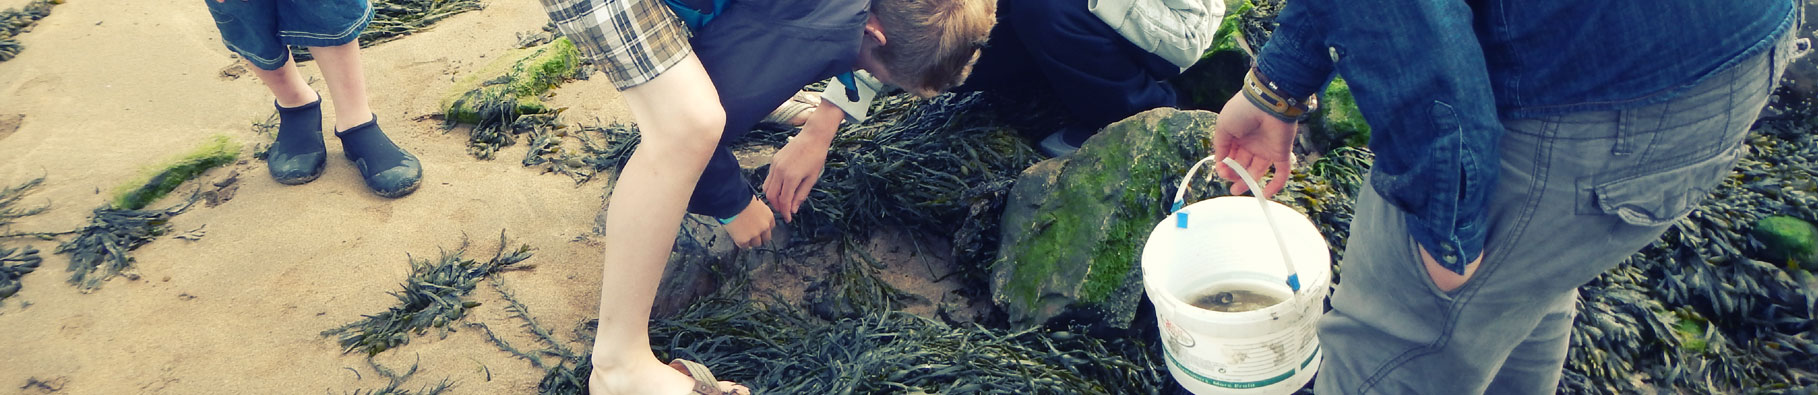 Beach ecology activity at Shoreline in Bude, Cornwall